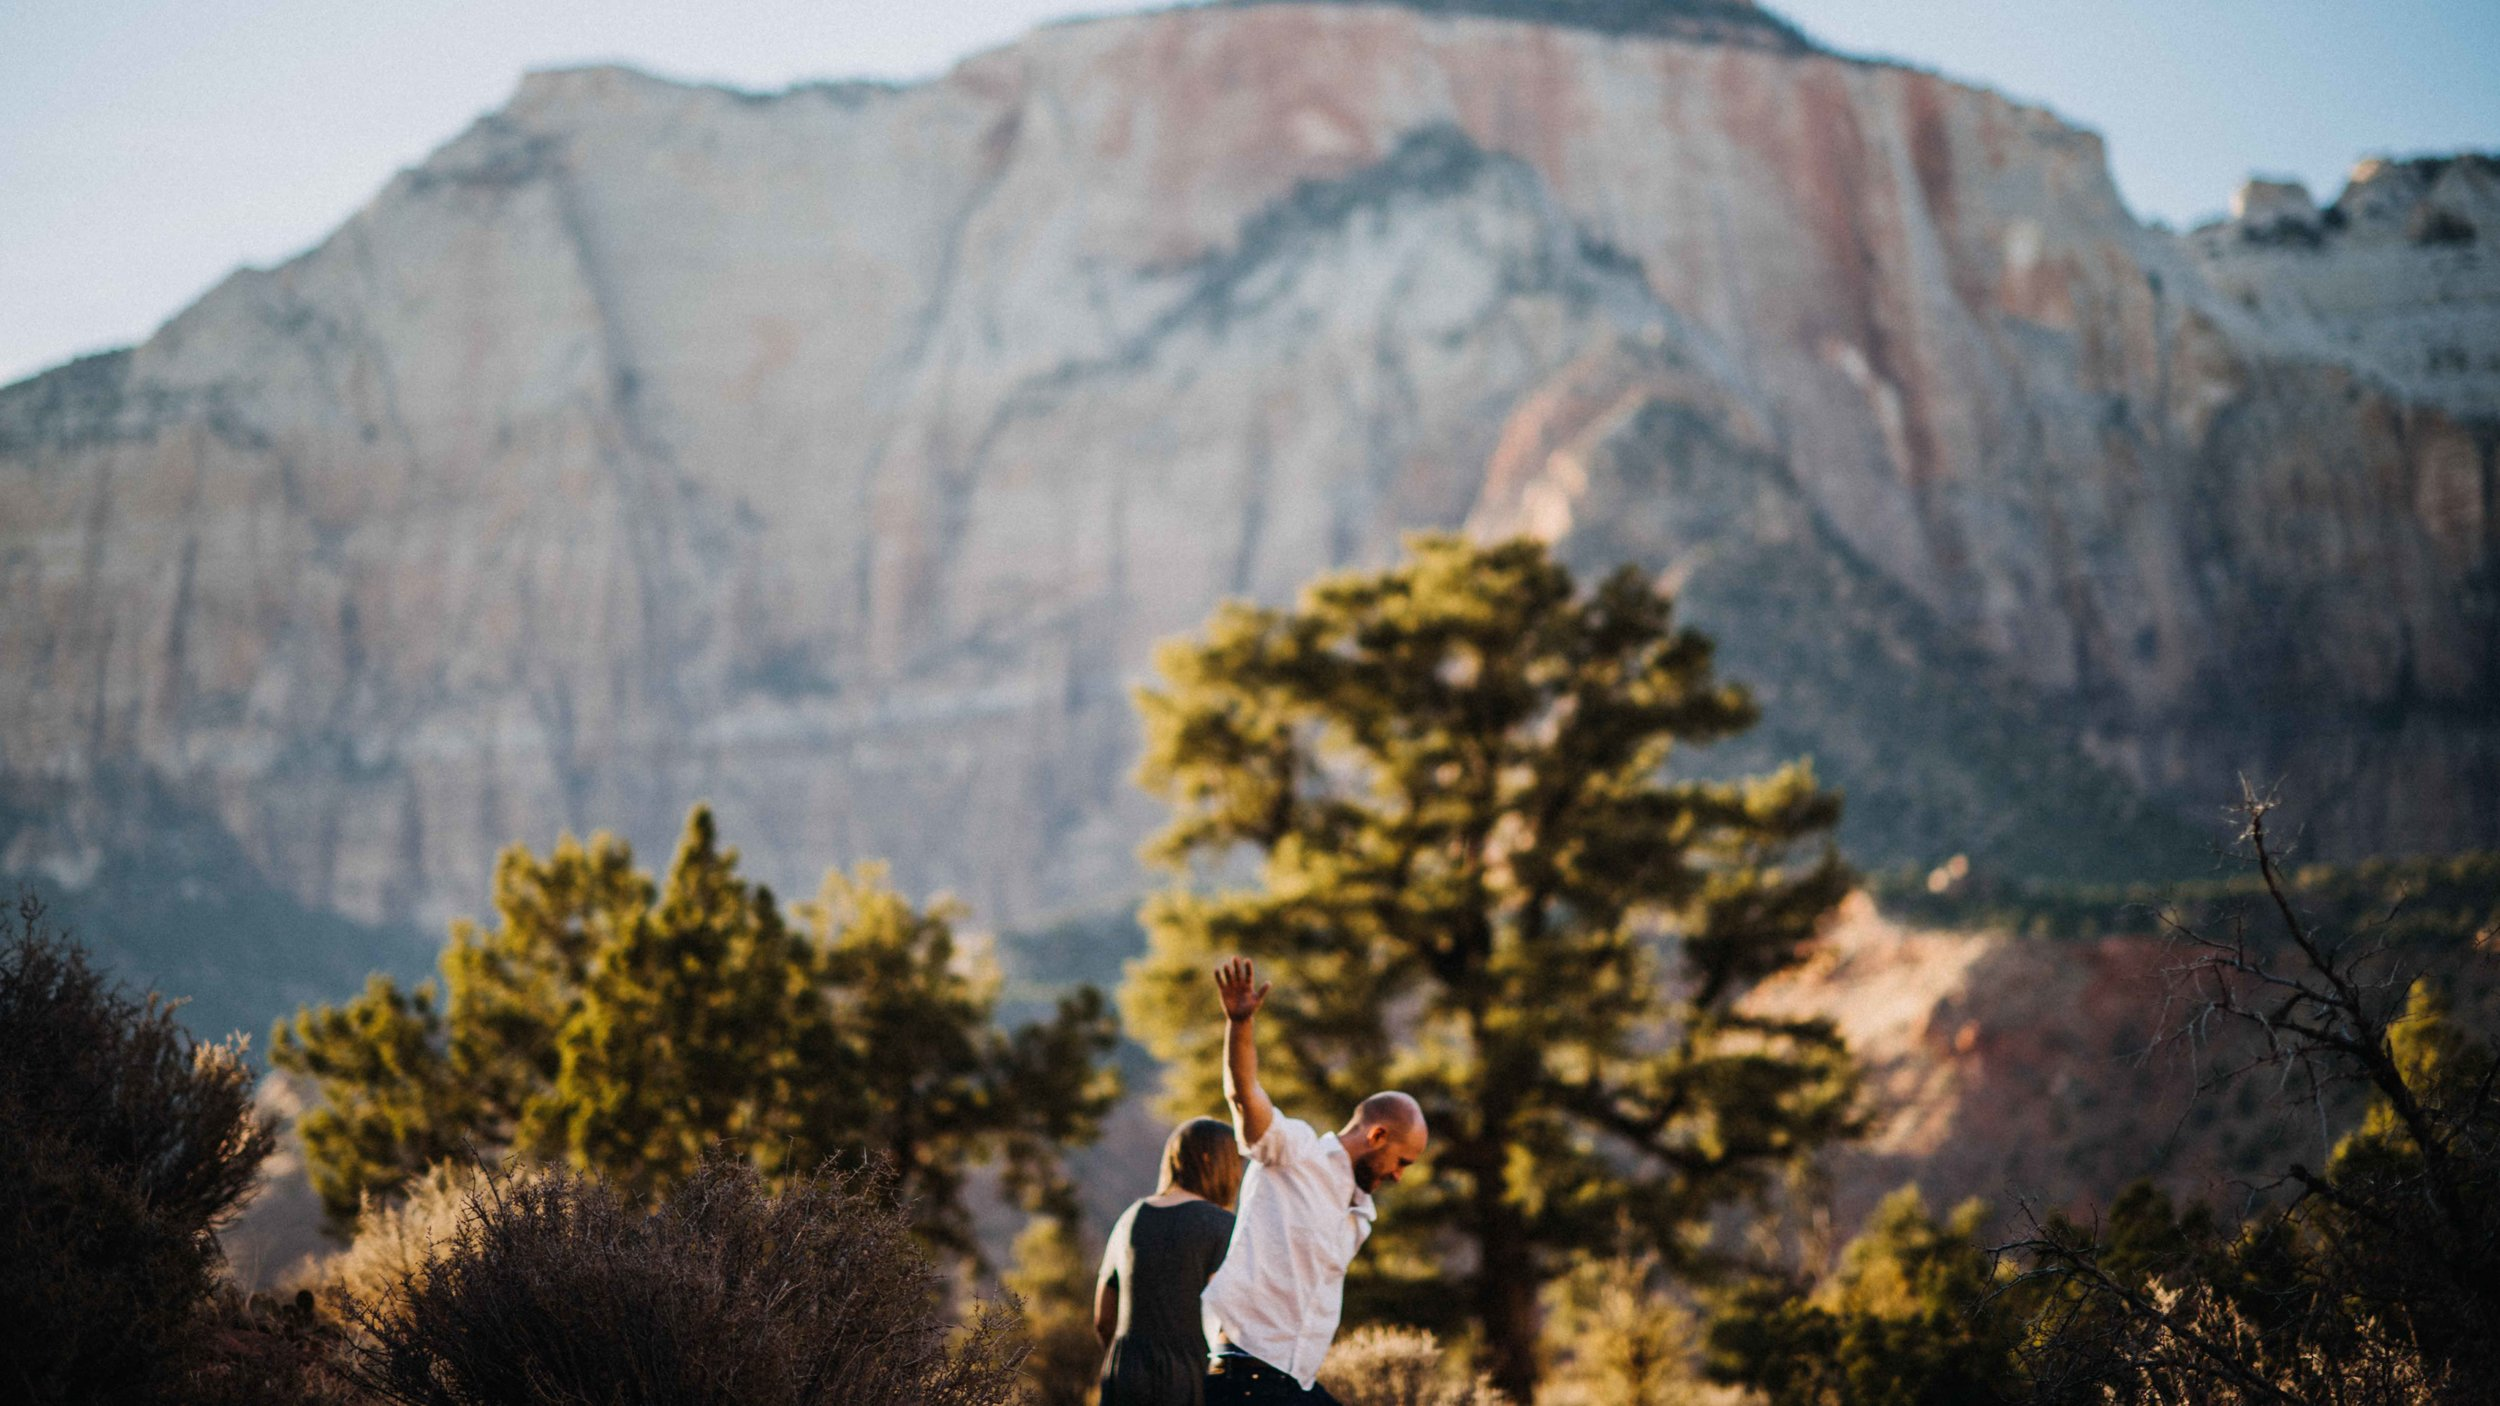 zion_national_park_utah_wedding_photography_engagement-2962.JPG